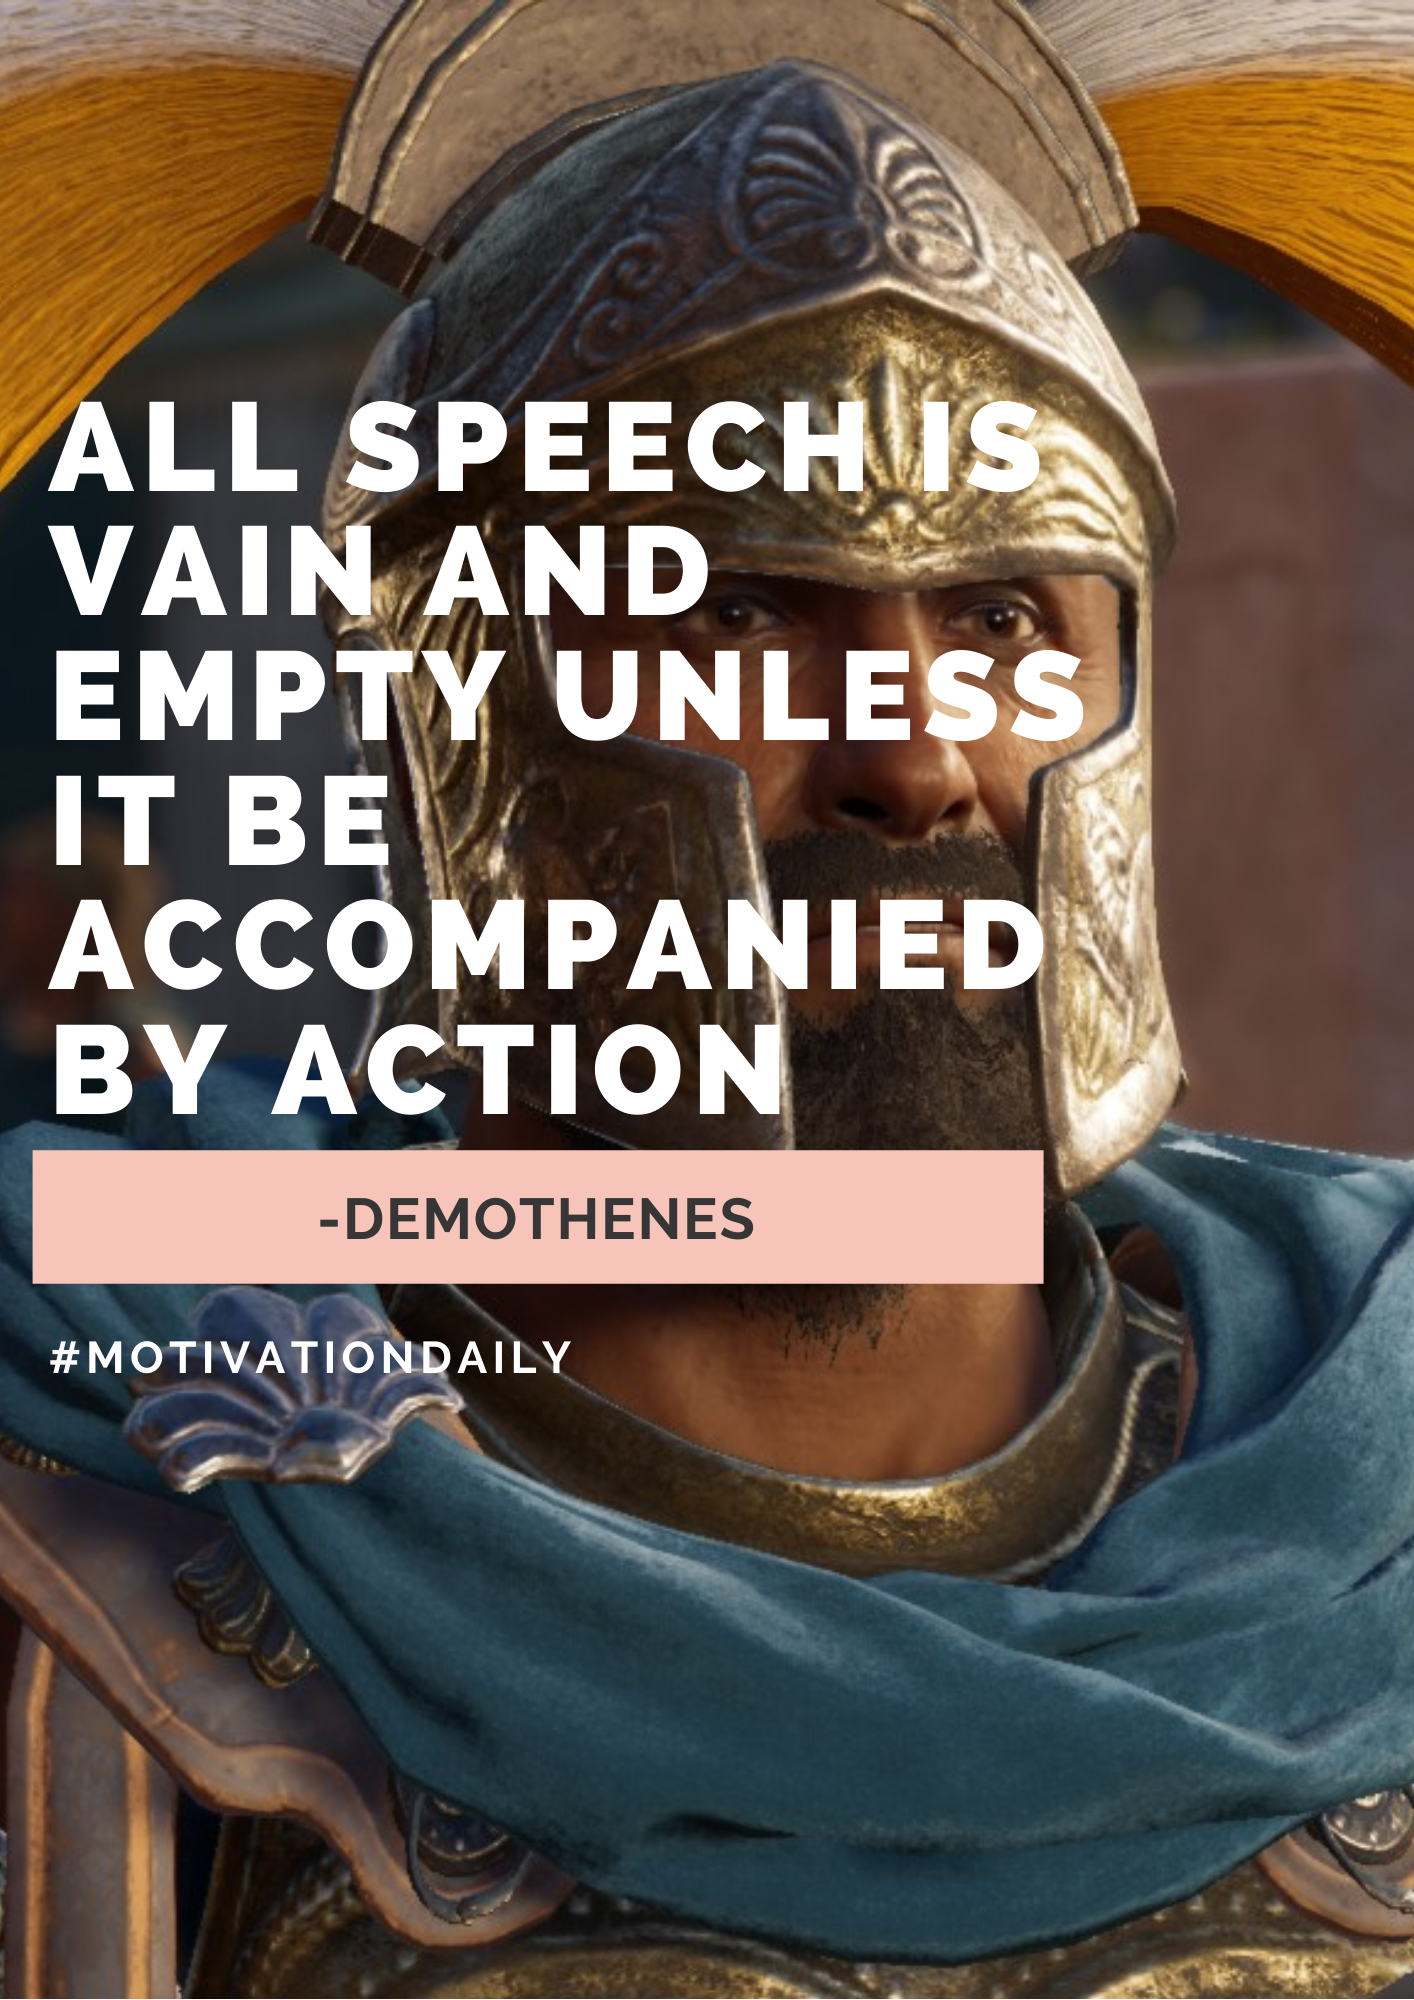 """""""All Speech is Vain and Empty Unless it Be Accompanied by Action."""" -Demothenes (1414 x 2000)"""